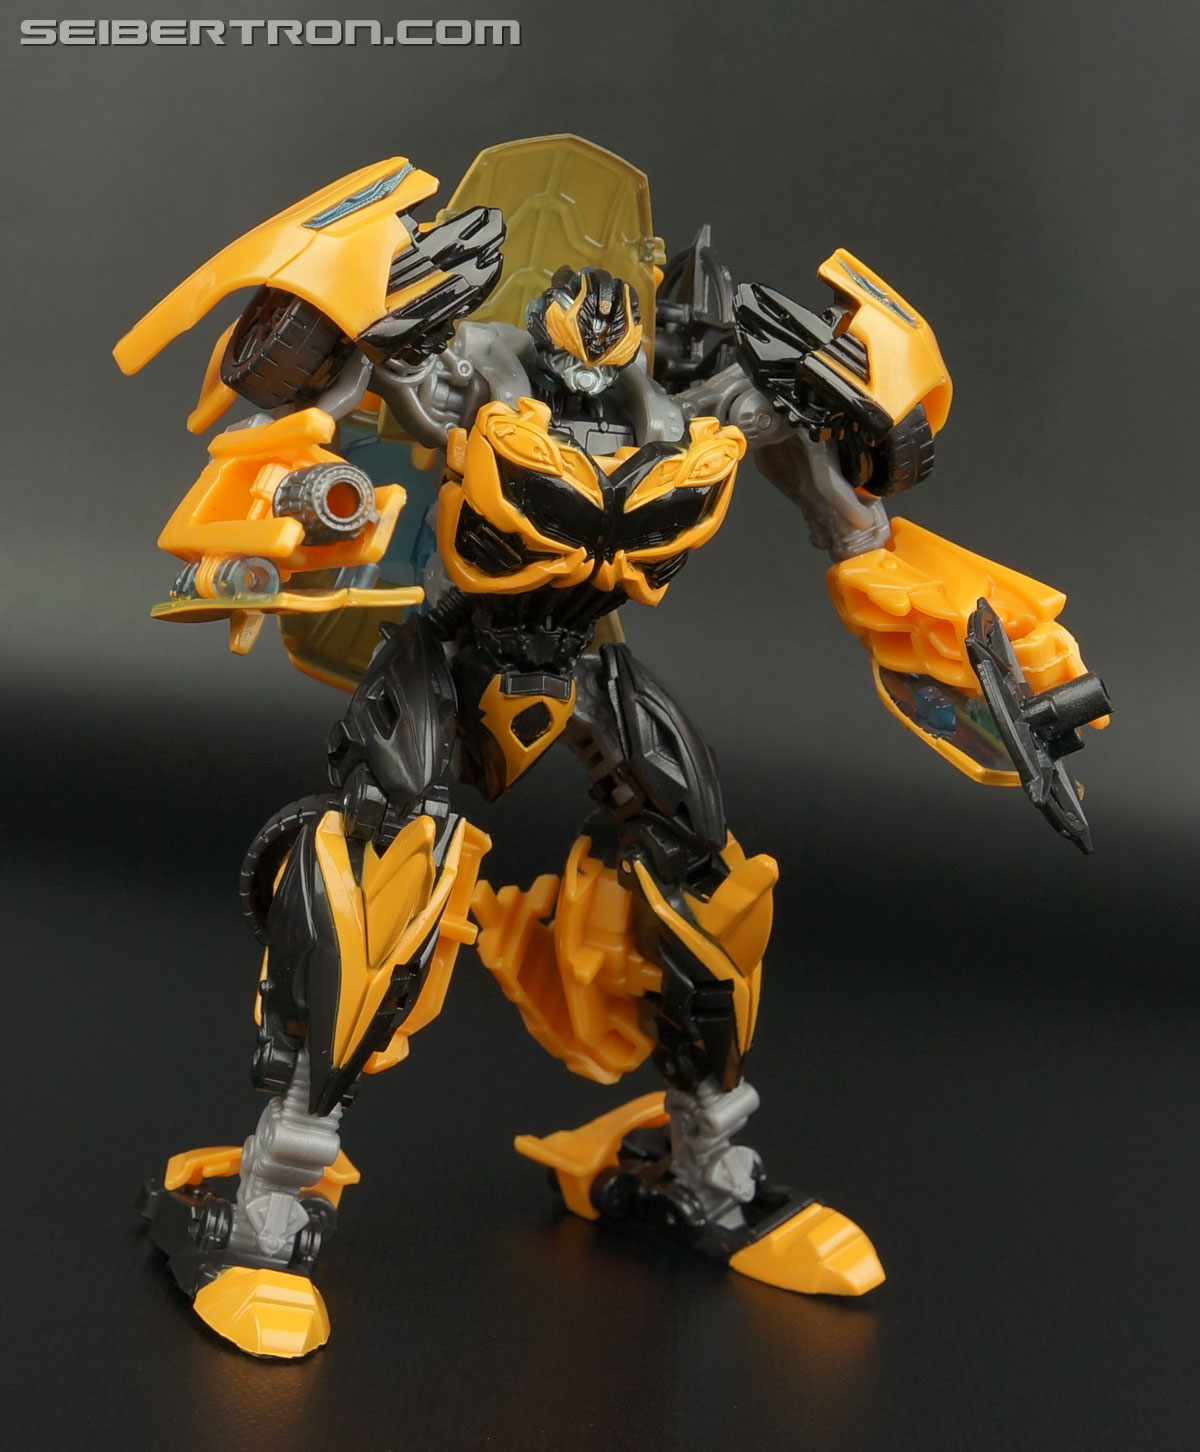 Transformers Age of Extinction: Generations Bumblebee (Image #97 of 190)